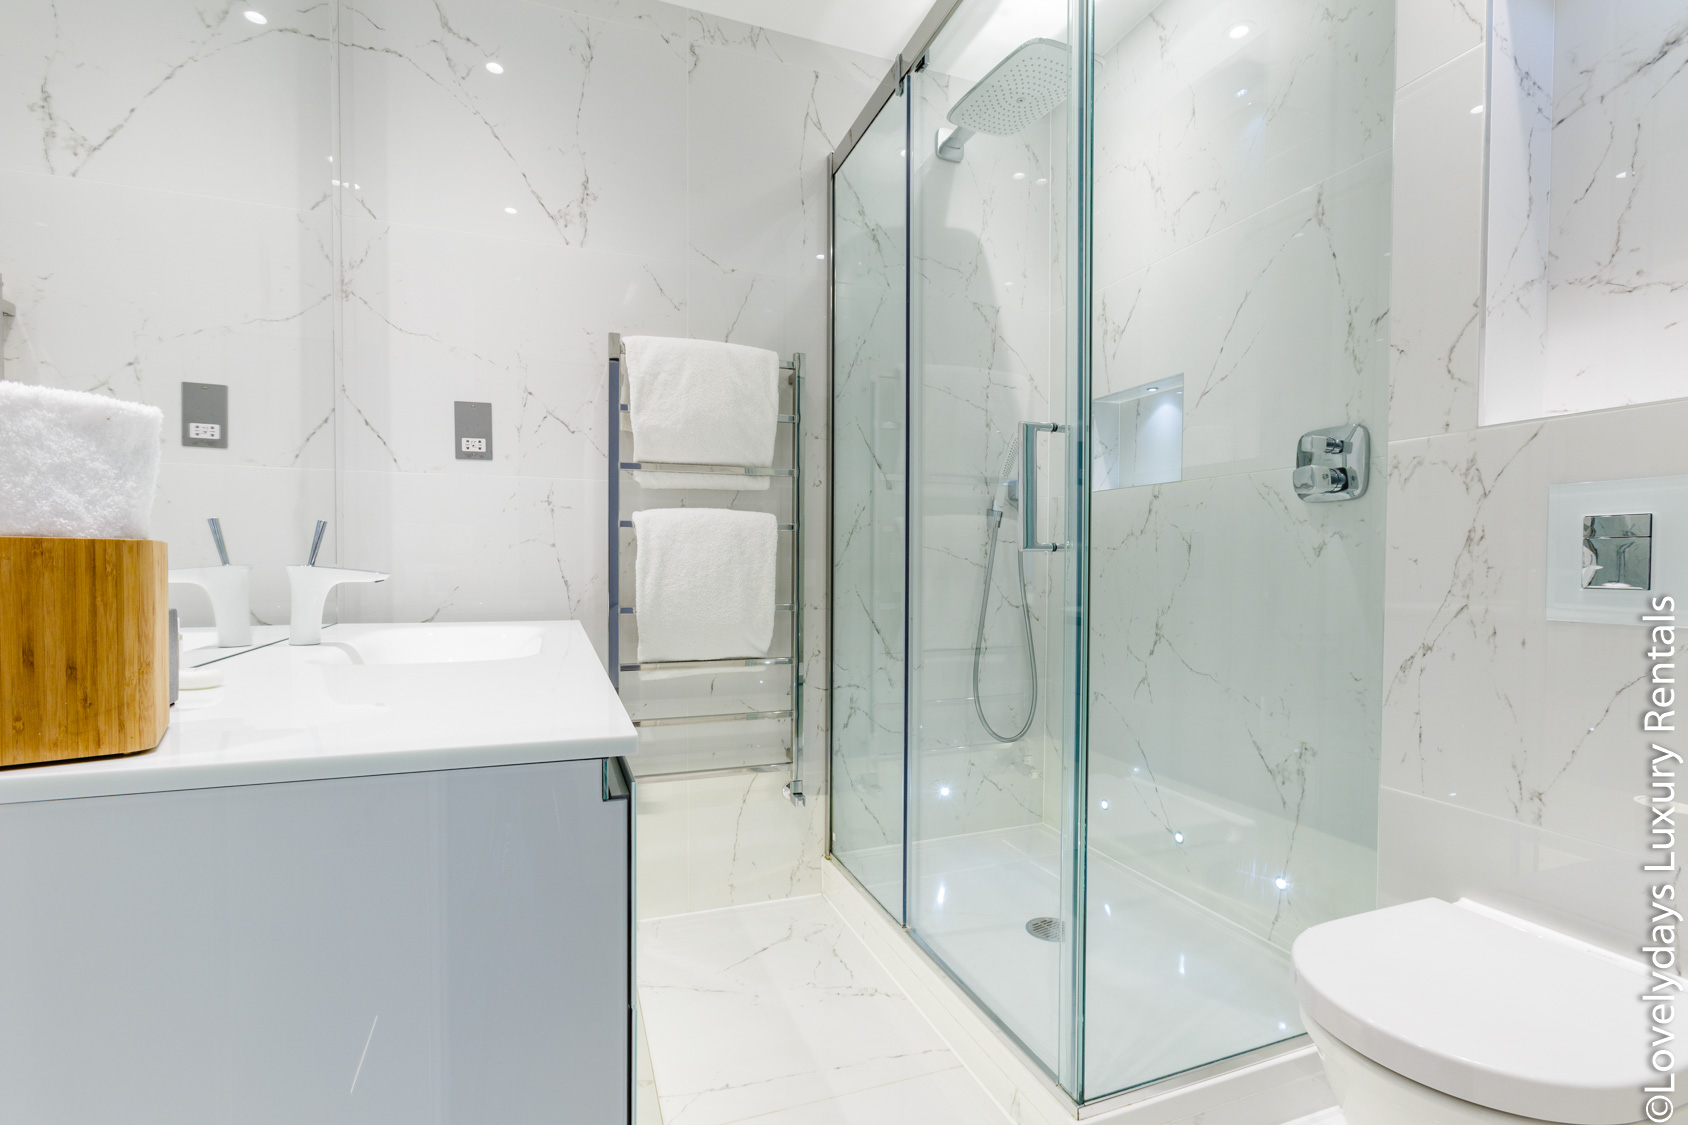 Lovelydays luxury service apartment rental - London - Covent Garden - Cockspur Street - Lovelysuite - 3 bedrooms - 2 bathrooms - Lovely shower - ae847277668e - Lovelydays